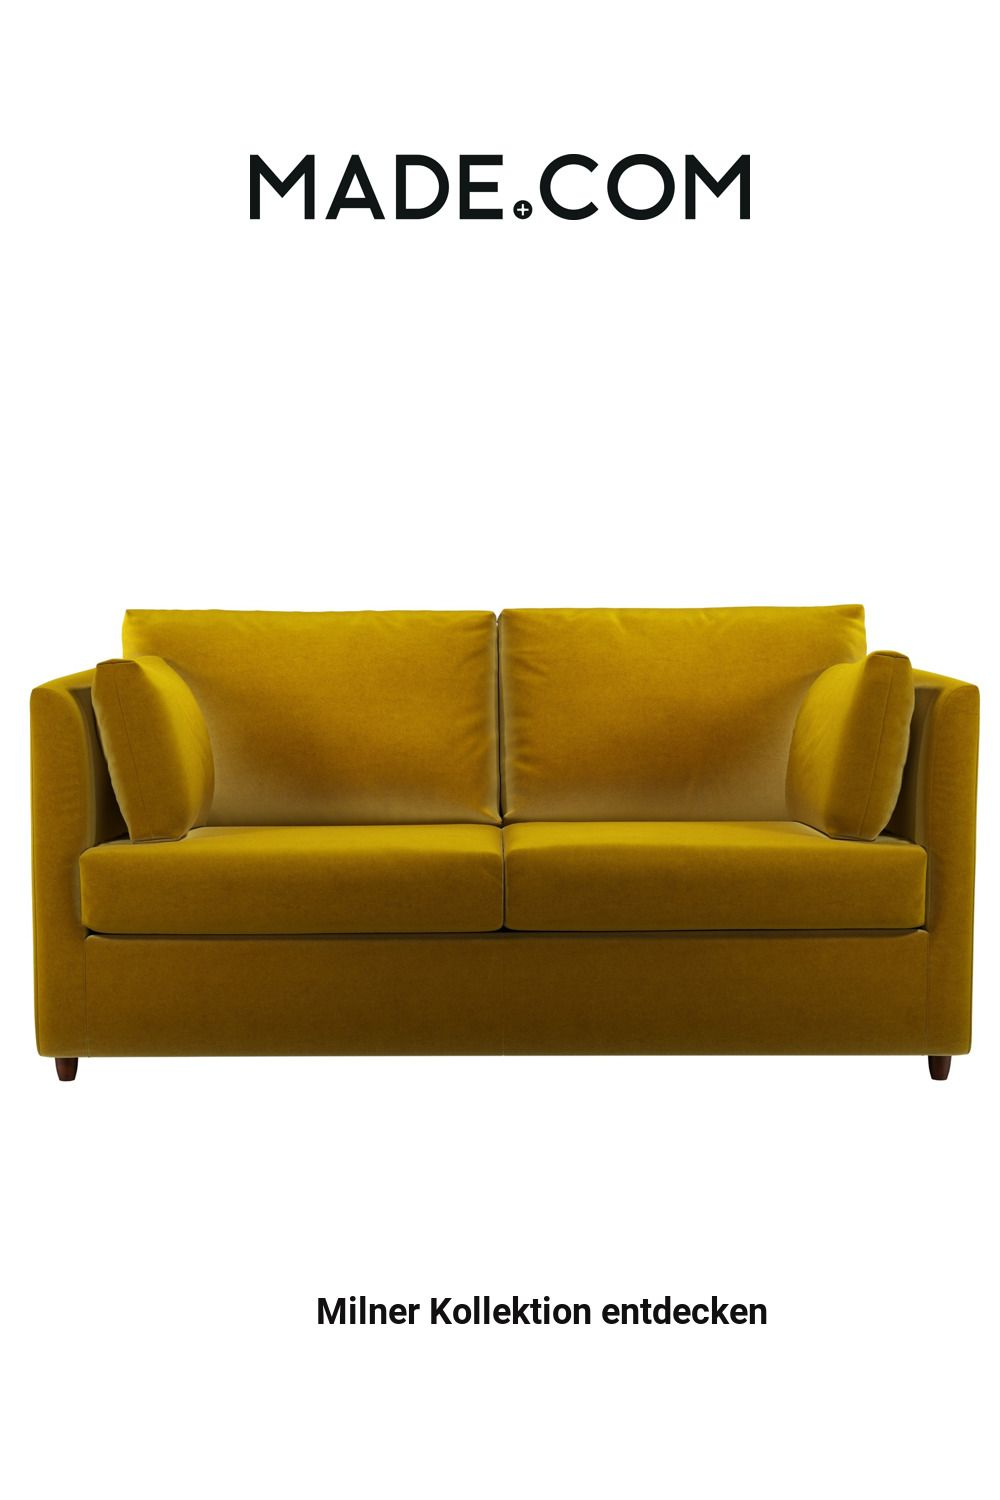 Made Schlafsofa Gelb In 2020 Sofa Furniture Couch